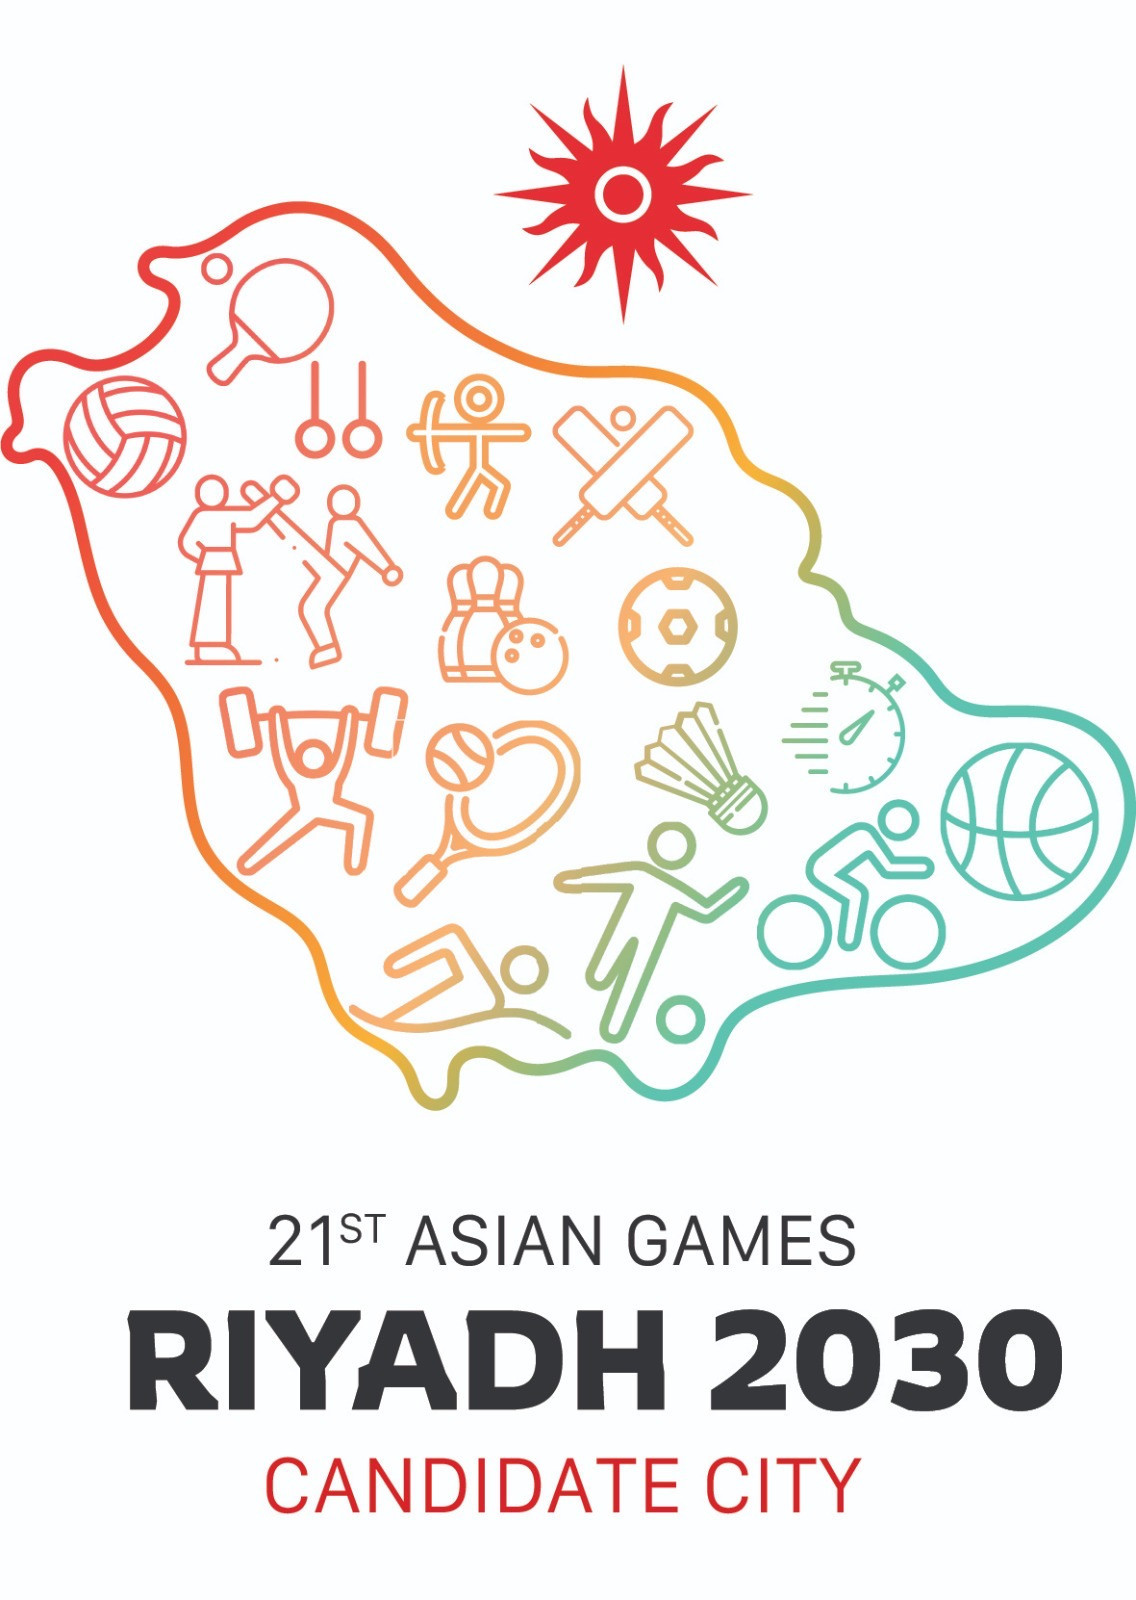 Riyadh claims 2030 Asian Games would help transform Saudi society